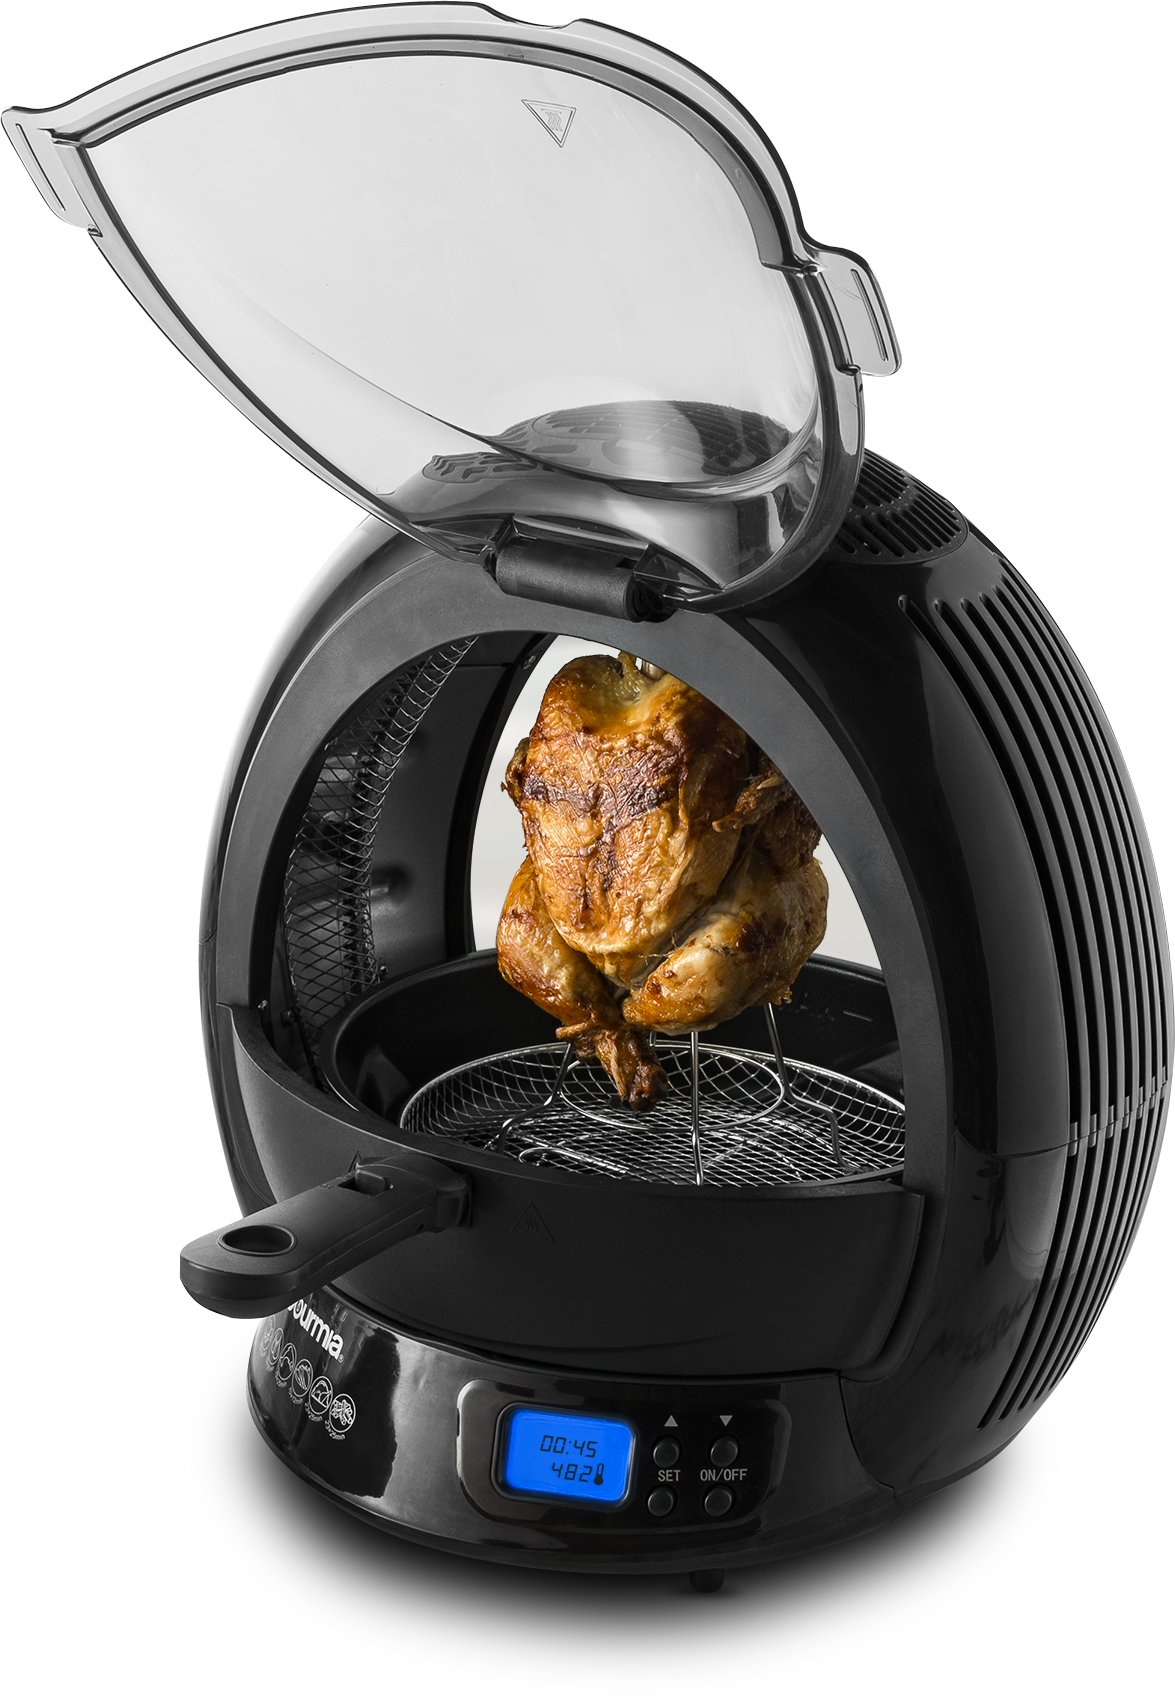 Gourmia GMF2600 9 In 1 Halogen Powered Vertical LED Display Rotisserie, Air Fryer, Multicooker  with Accessories and Recipe Book